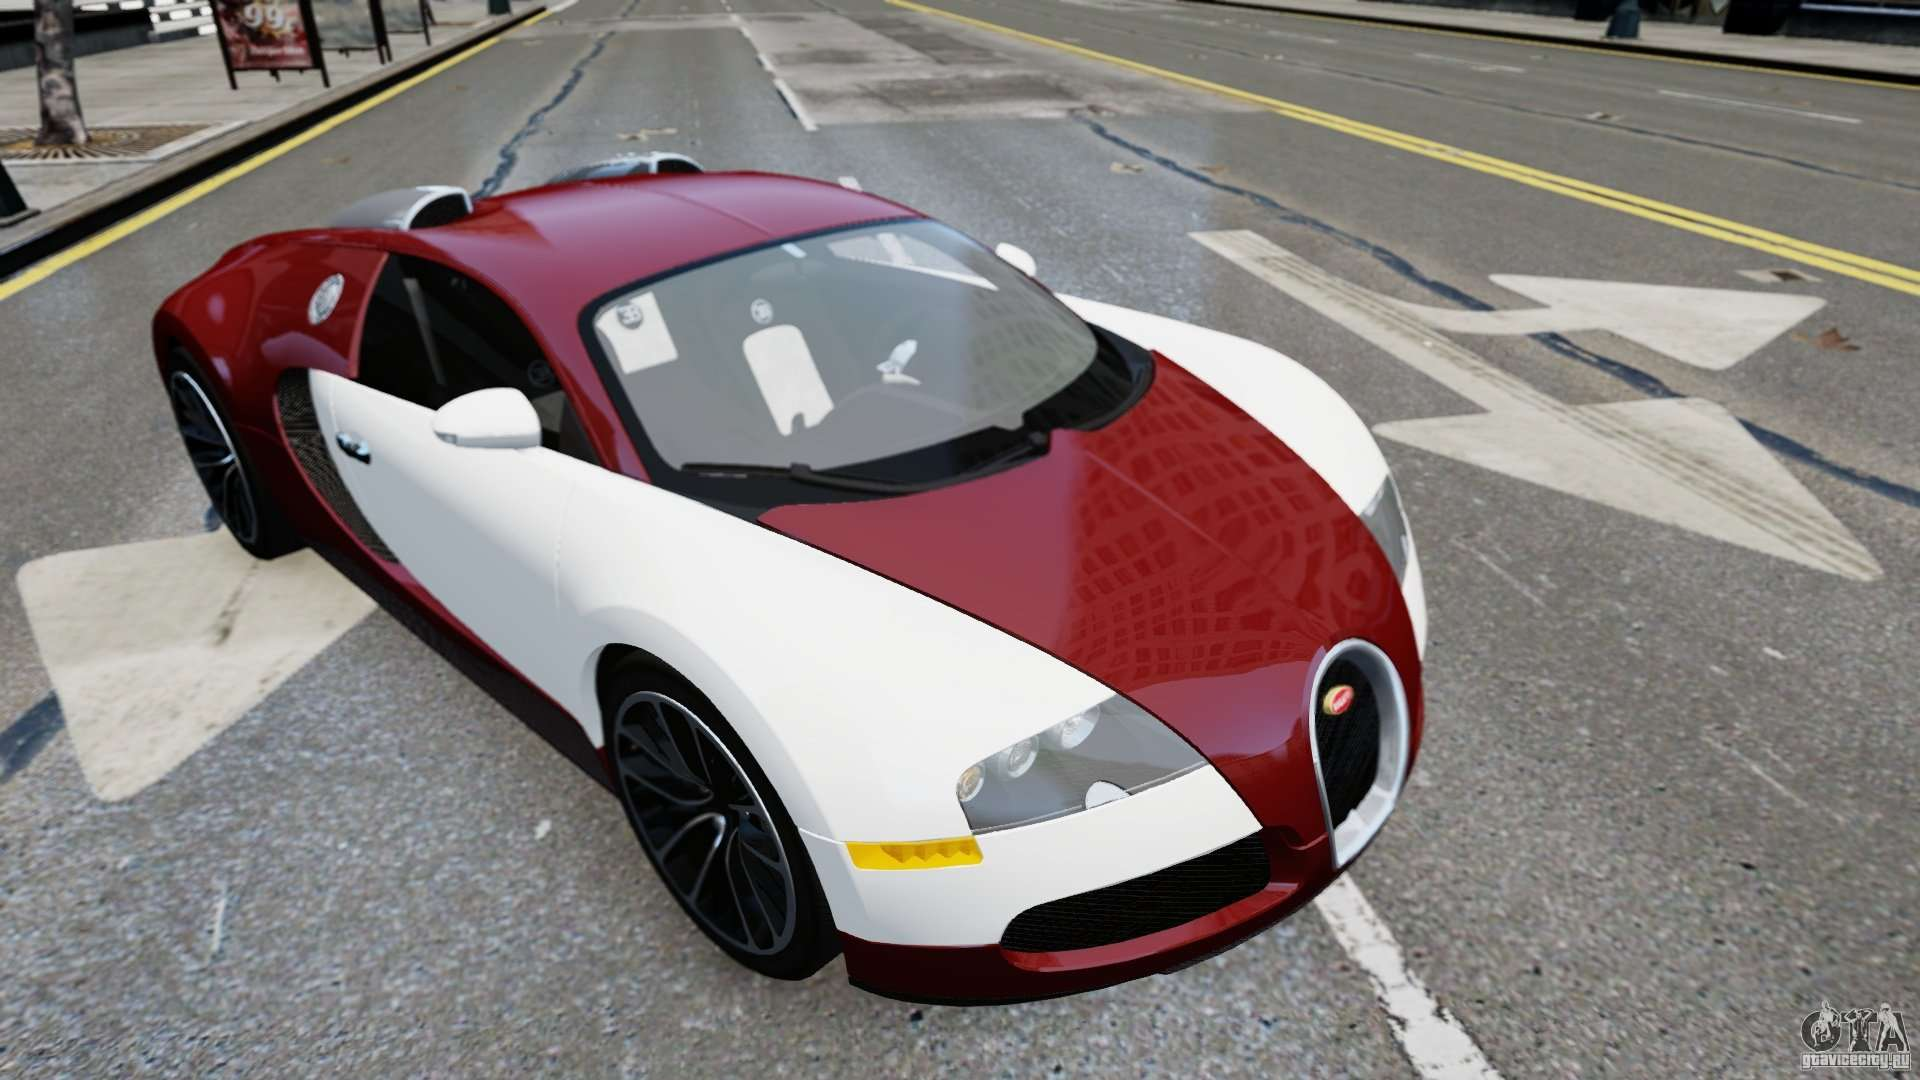 23007-1359561983-enb2013-1-30-15-38-52 Cool Bugatti Veyron Price In Uae 2015 Cars Trend